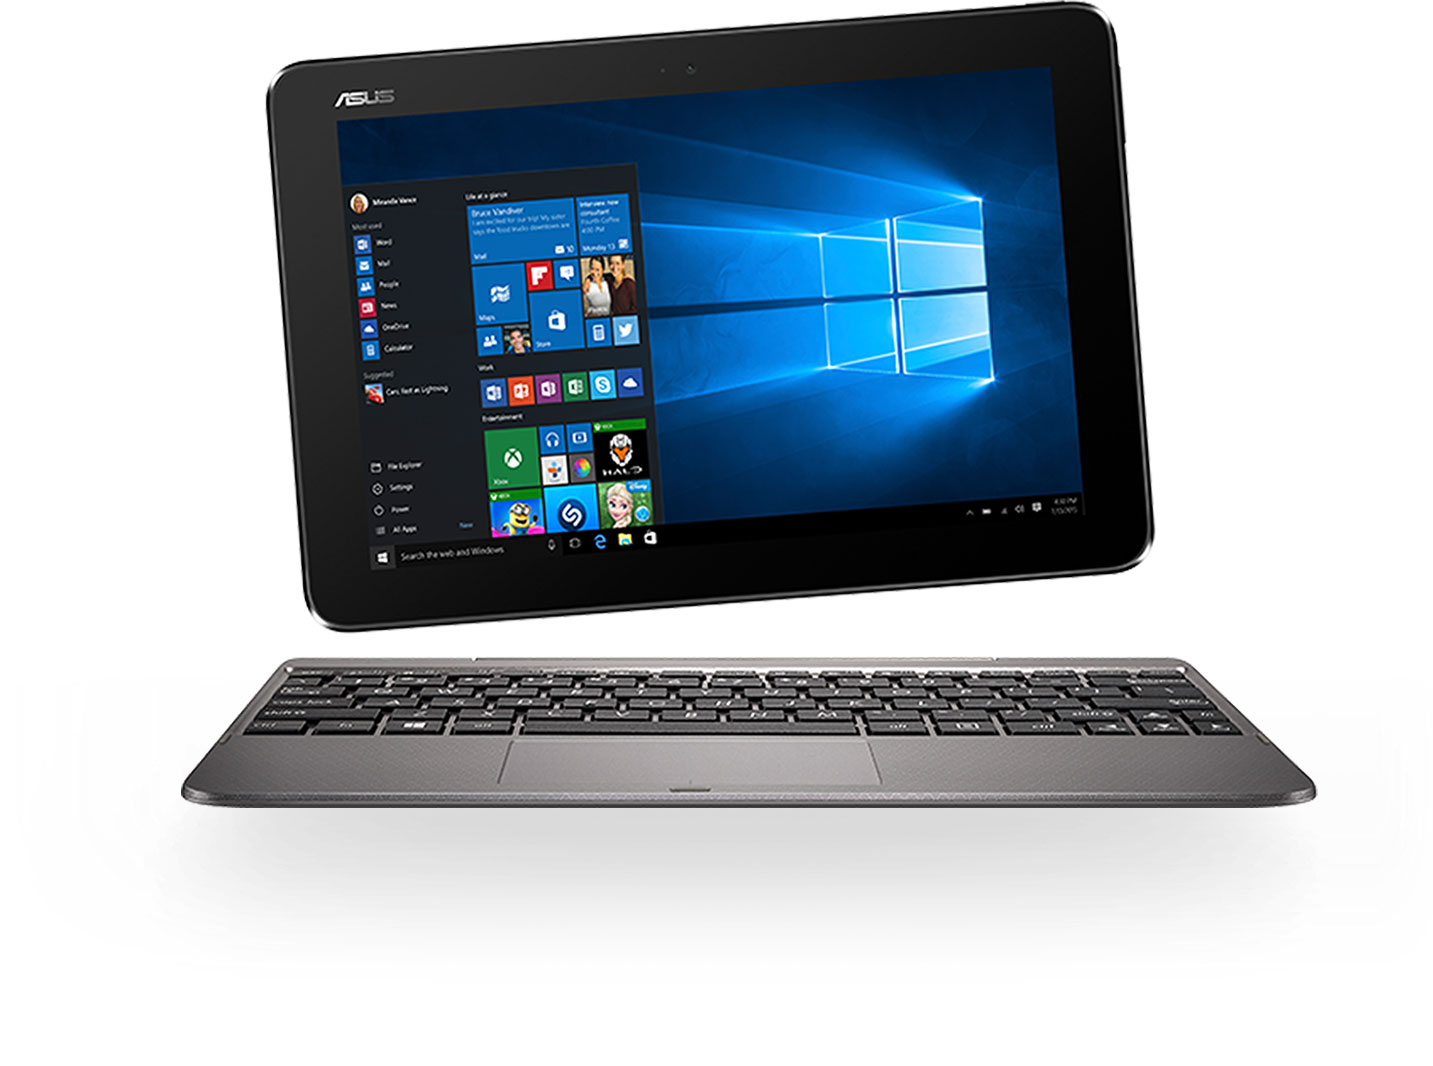 Offerta Asus Transformer Book su TrovaUsati.it